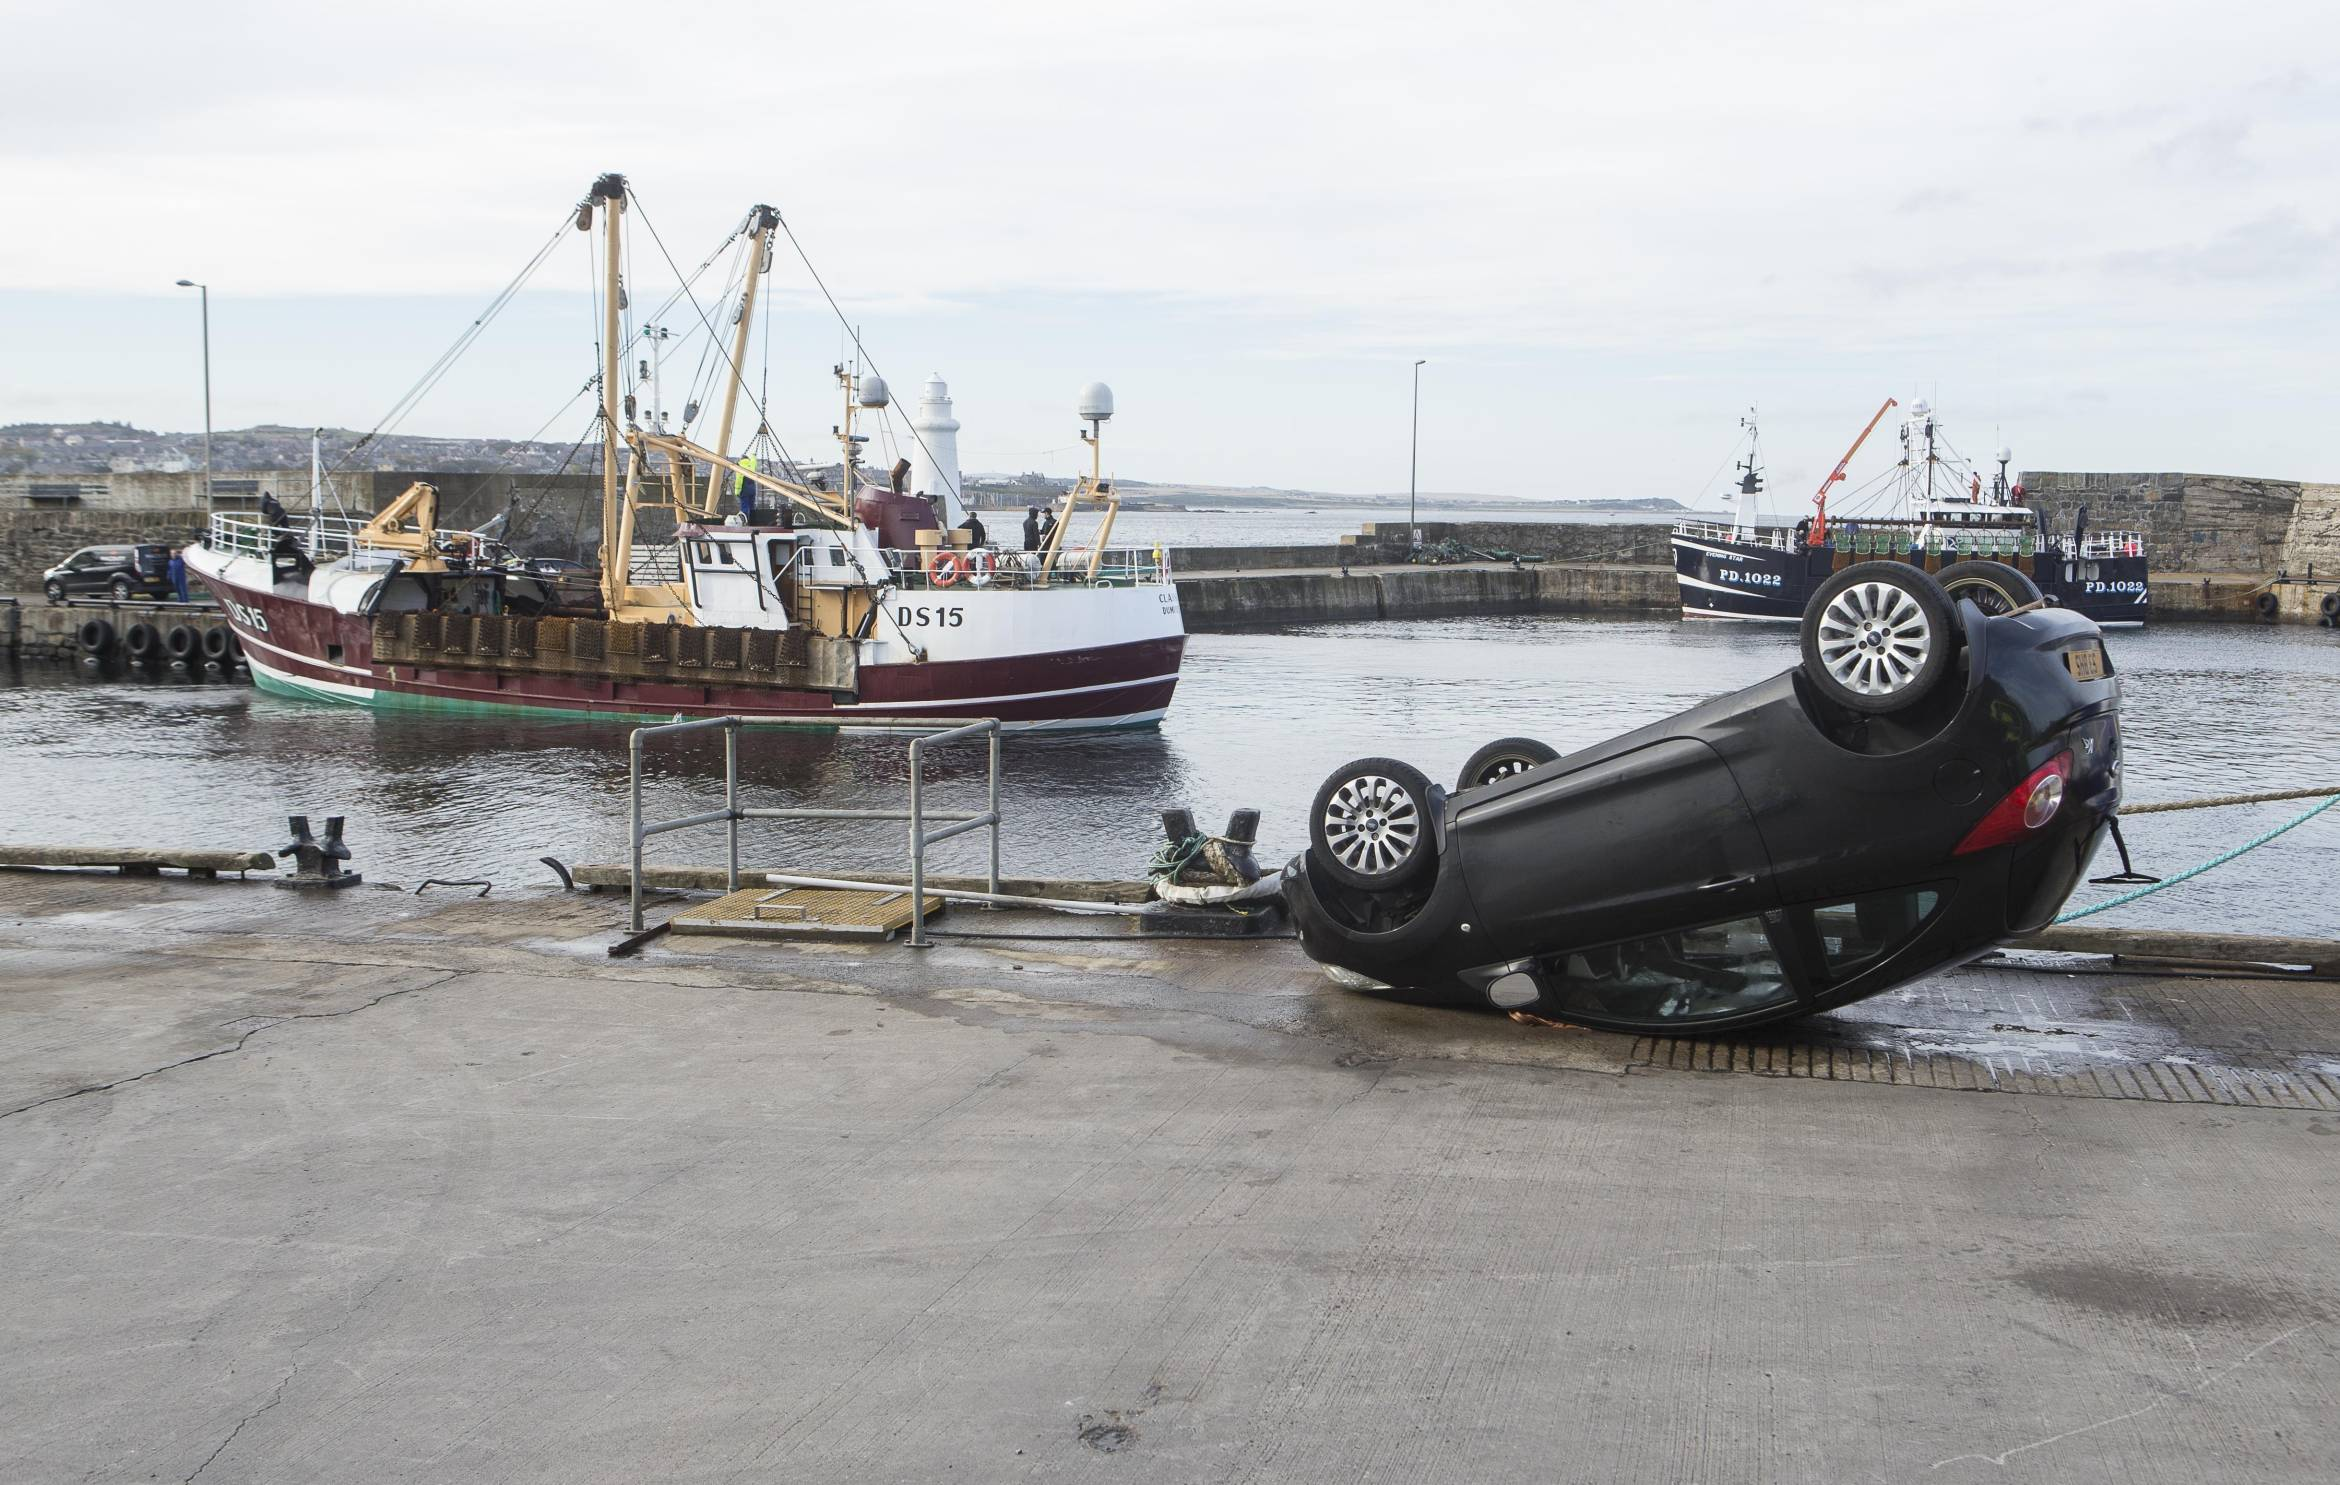 The car plunged into Macduff harbout